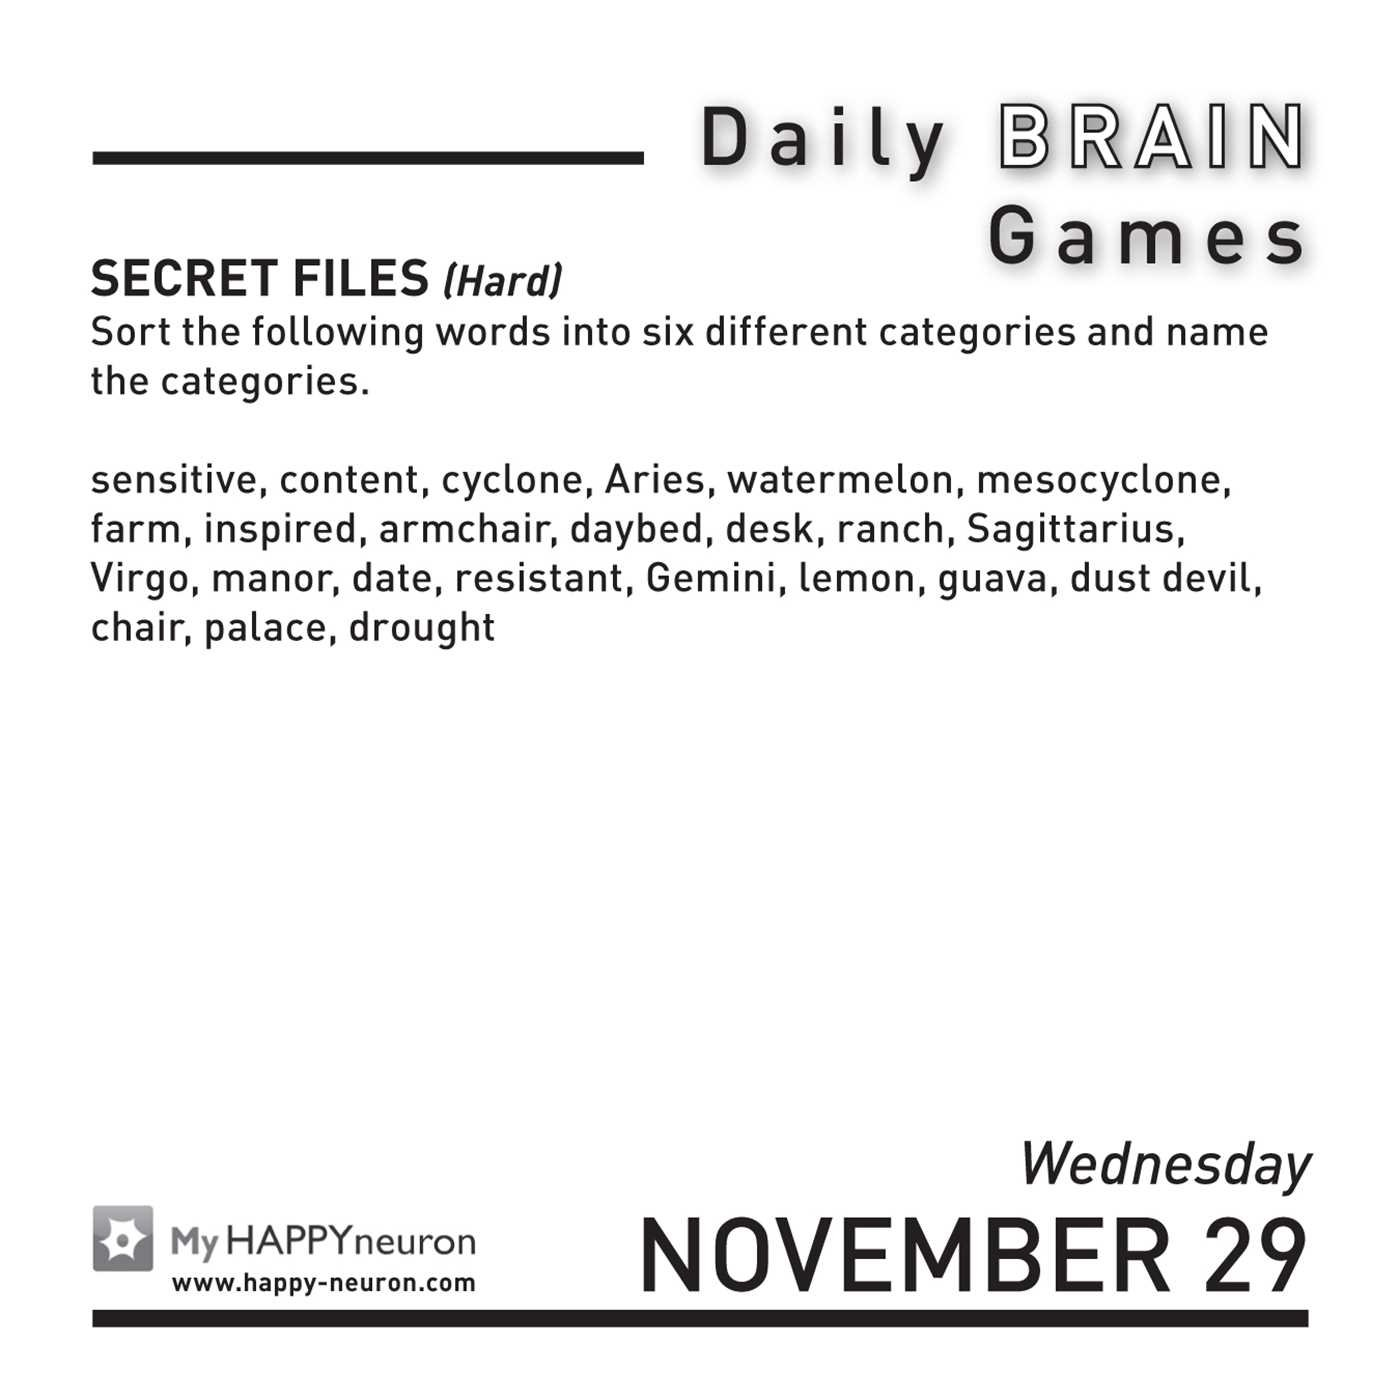 Daily Brain Games 2017 Day-to-Day Calendar: HAPPYneuron